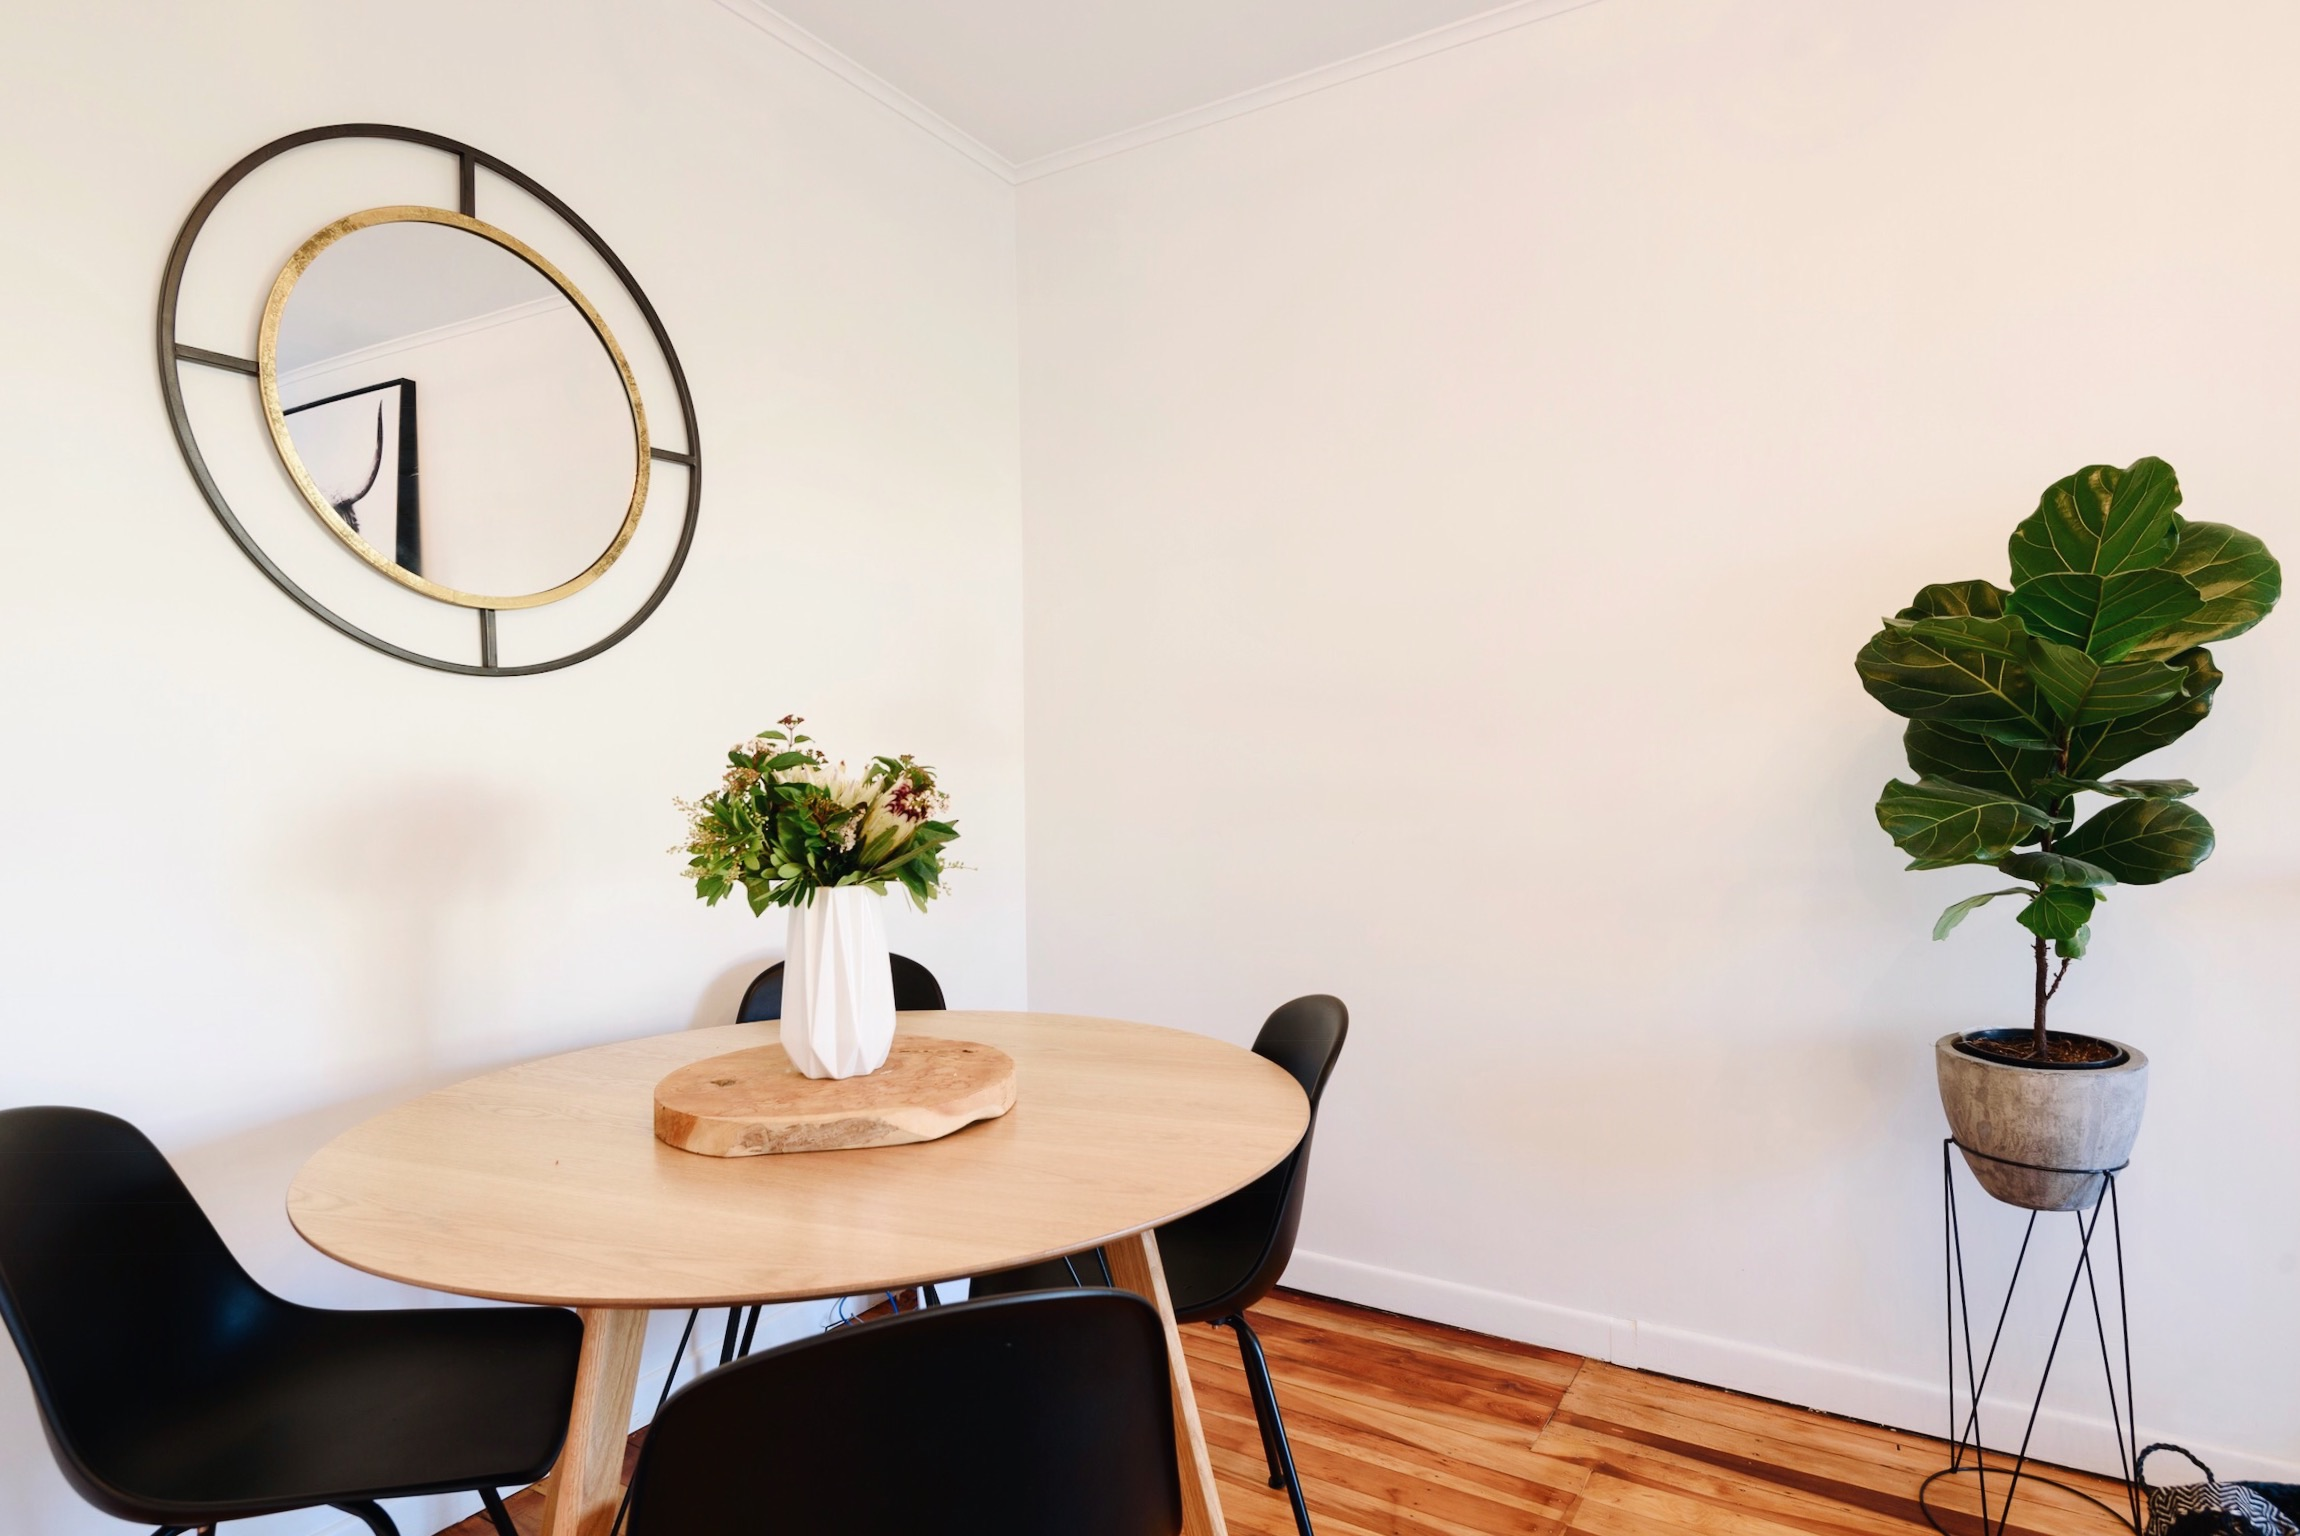 Pearson + Projects The Expert Reveal Dining Room Round Table Mirror.jpg